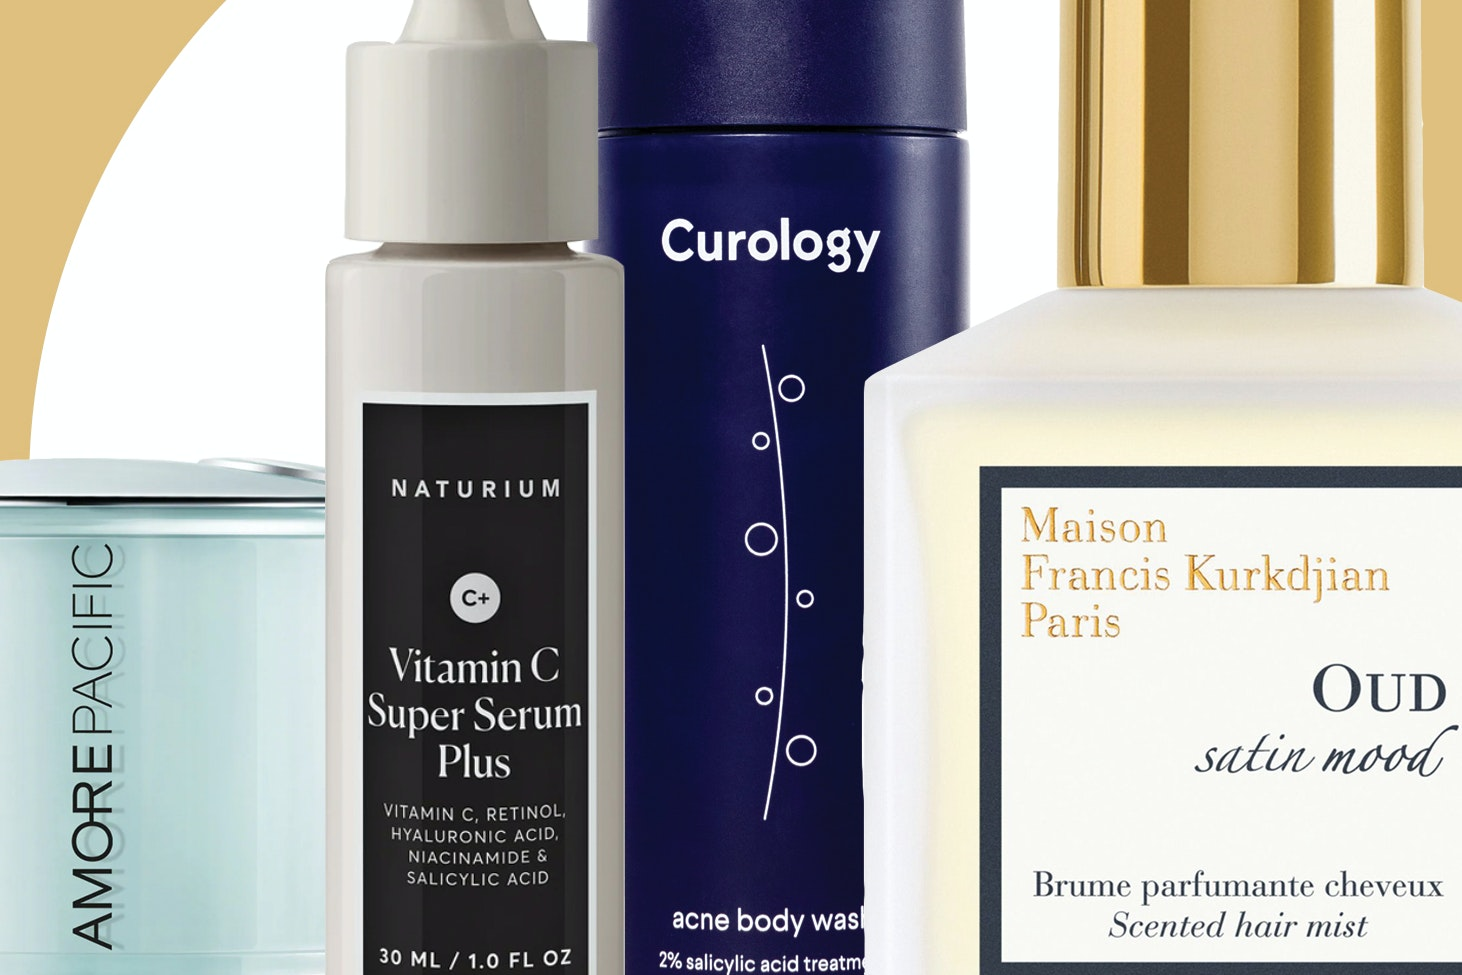 17 New Beauty Products Our Editors Want You to Try This July